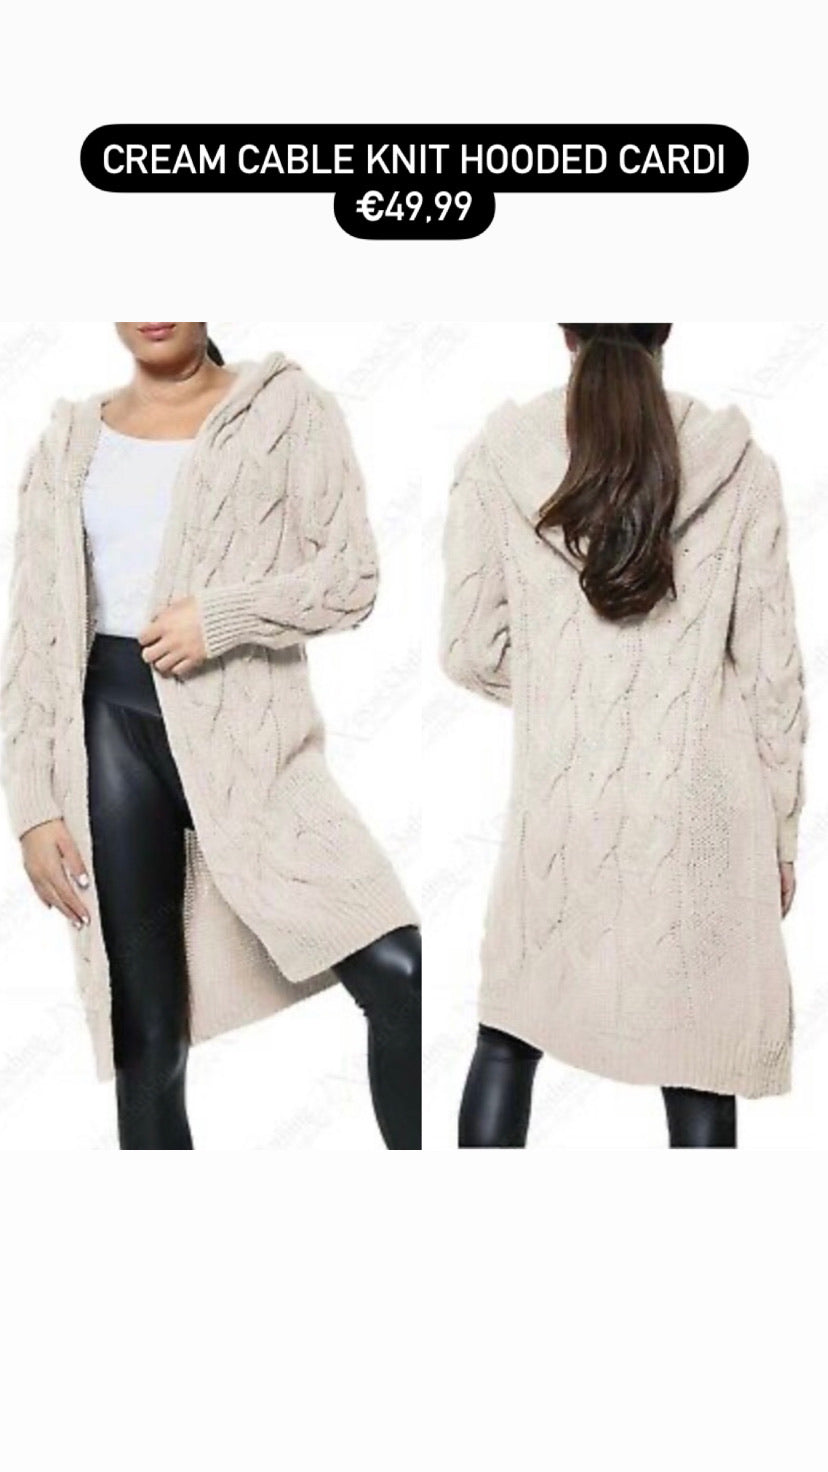 Cream cable knit hooded cardi